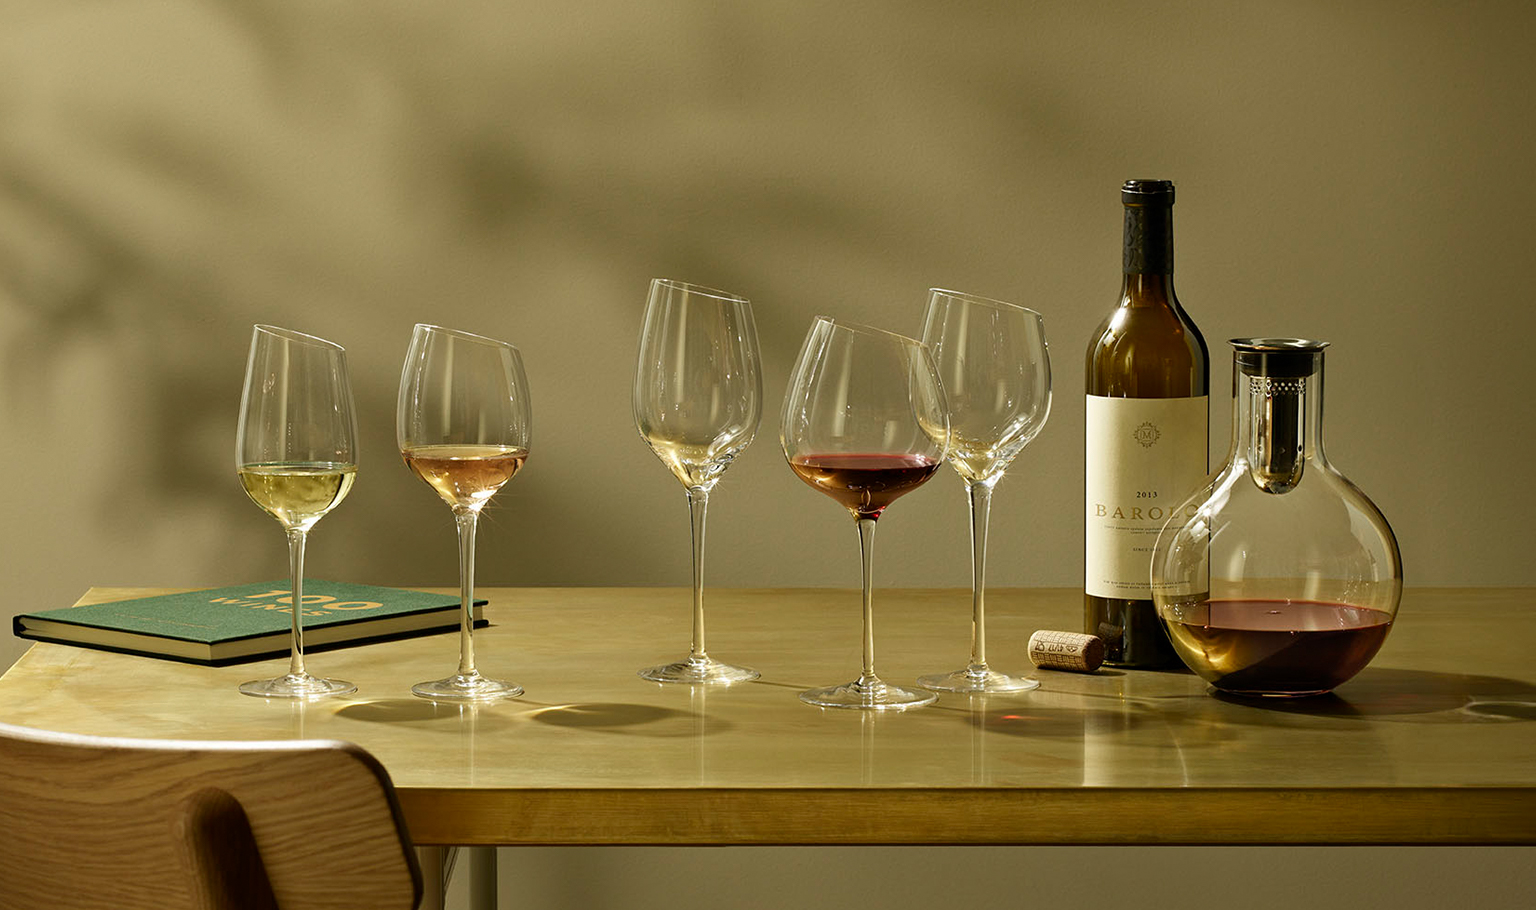 <p>Enjoy a glass of wine under the open sky. We have wine glasses to suit any occasion.</p>